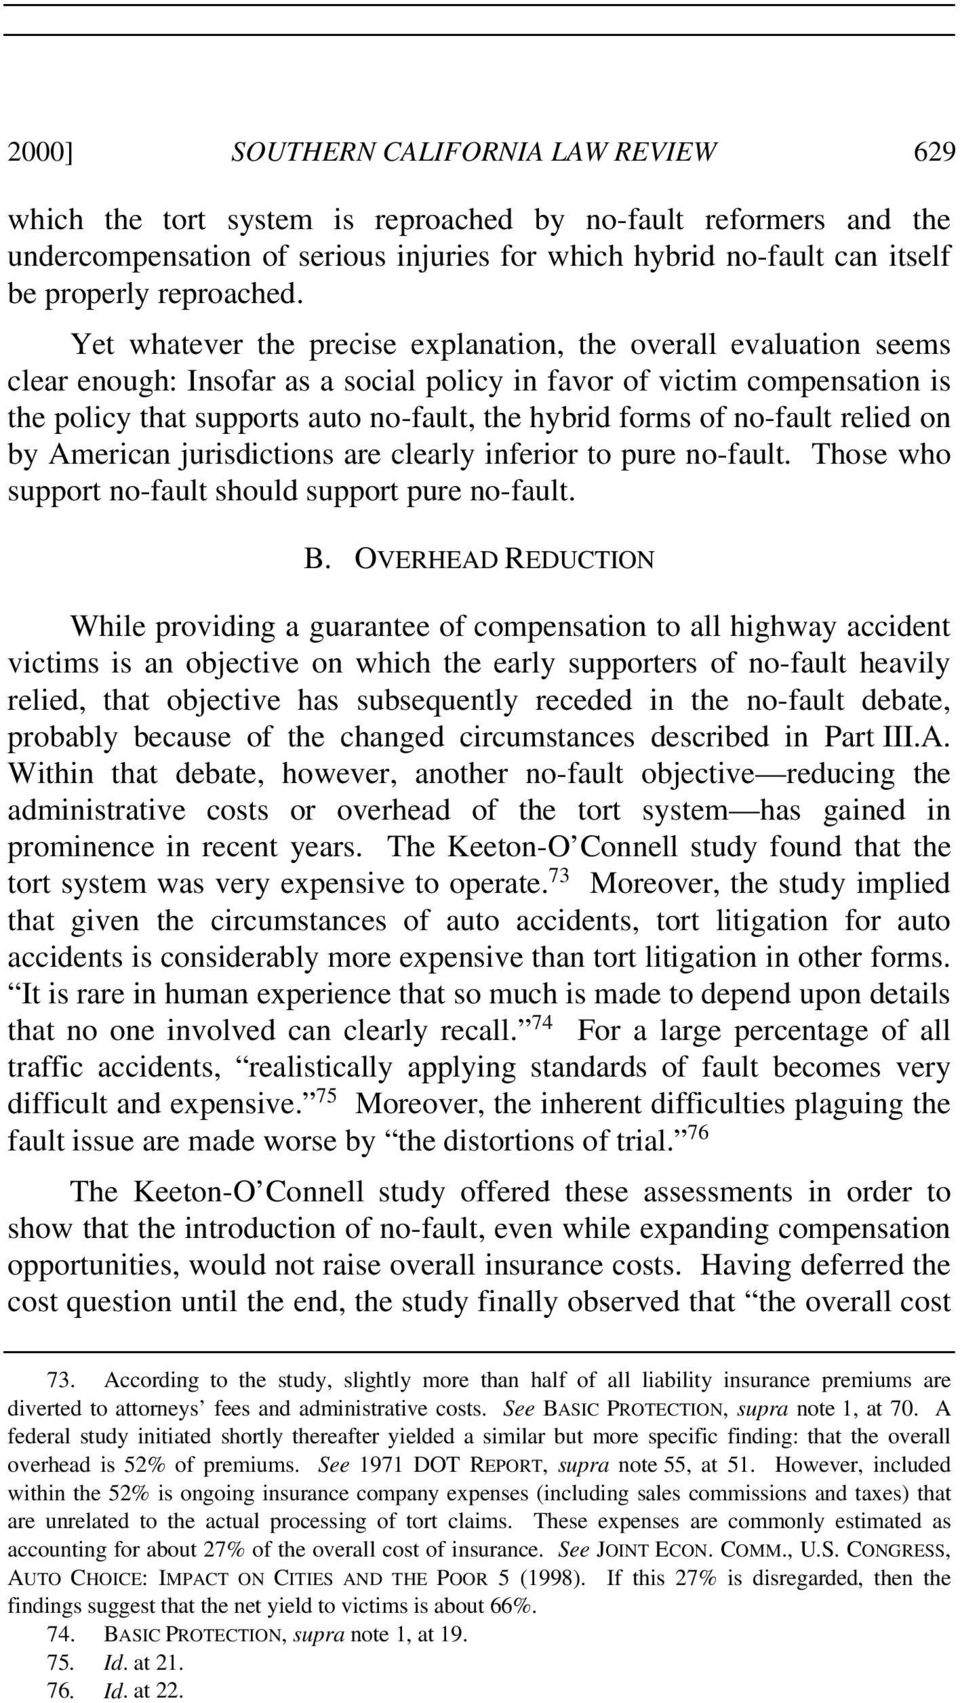 Yet whatever the precise explanation, the overall evaluation seems clear enough: Insofar as a social policy in favor of victim compensation is the policy that supports auto no-fault, the hybrid forms